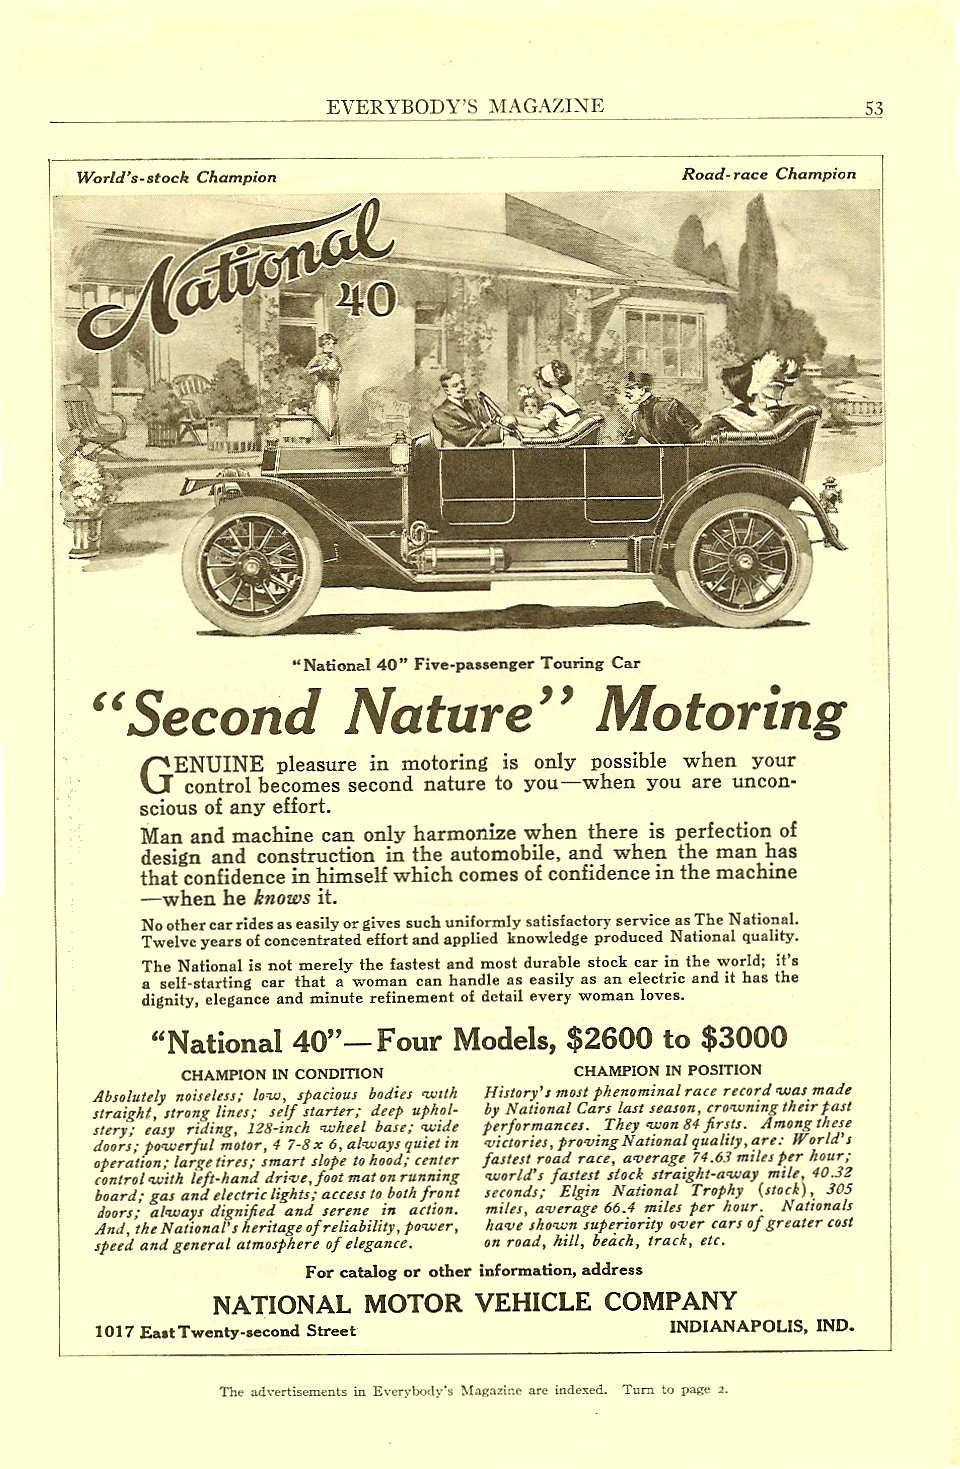 """1912 4 National 40 """"Second Nature Motoring"""" Everybody's Magazine April 1912 6.5″x9.75″ page 53"""